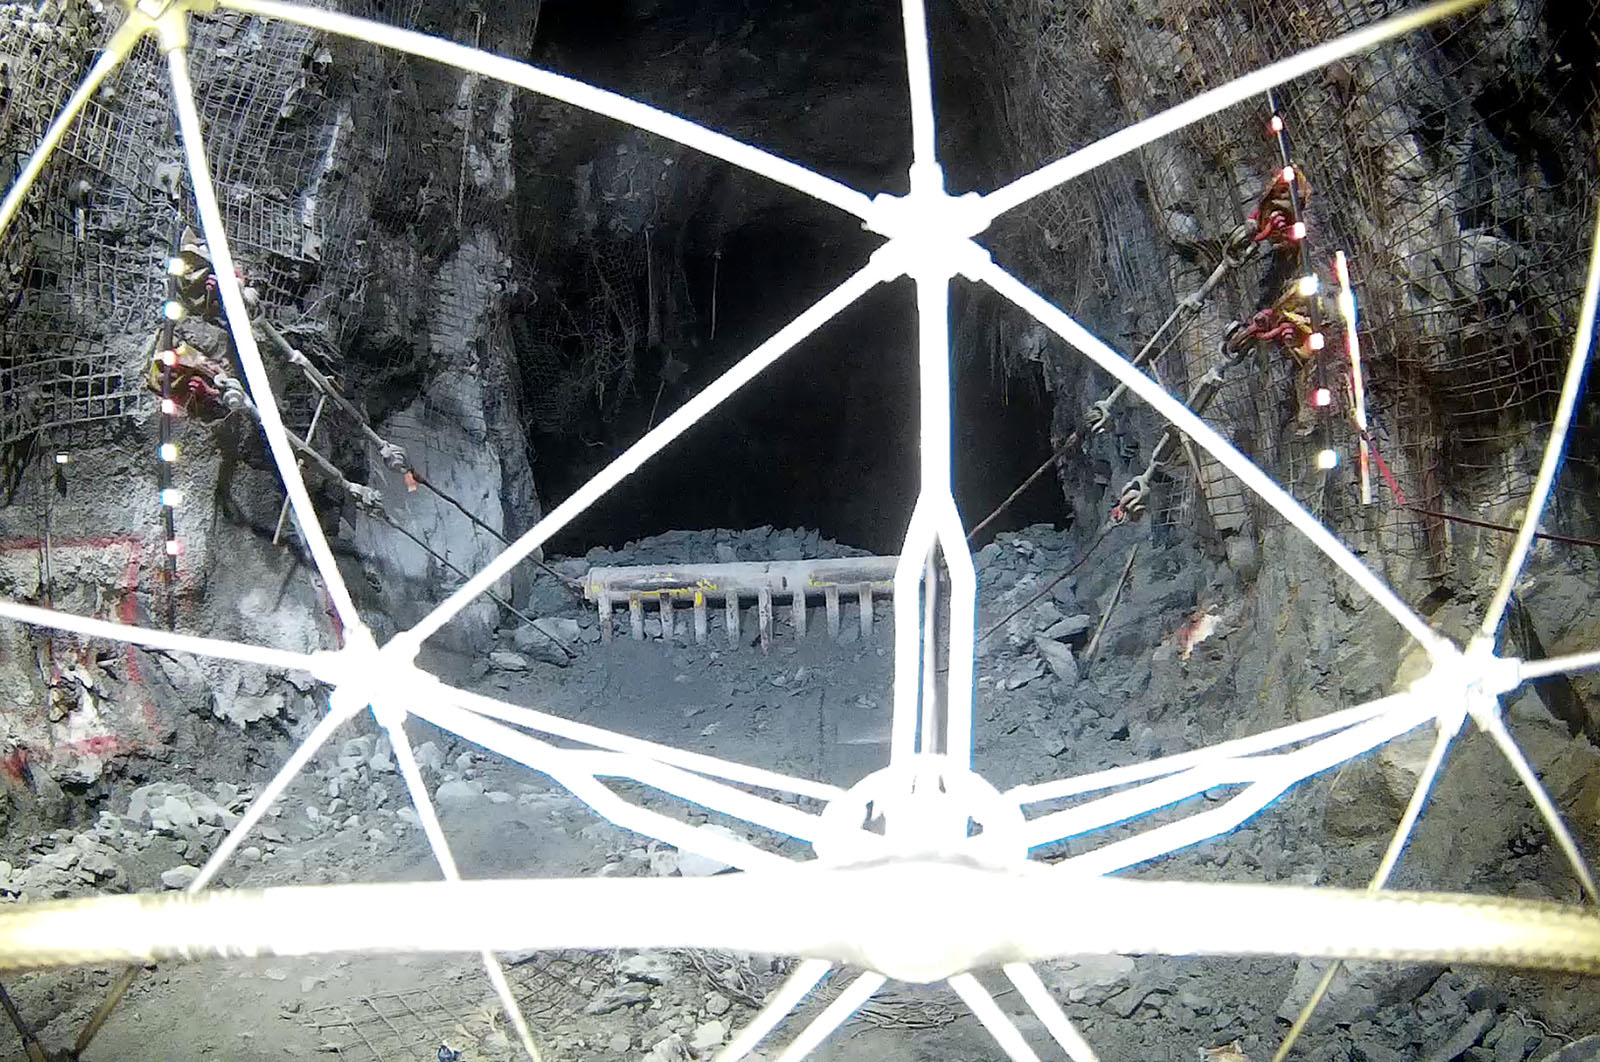 Indoor Drone in Underground Mining: Accessing the Inaccessible